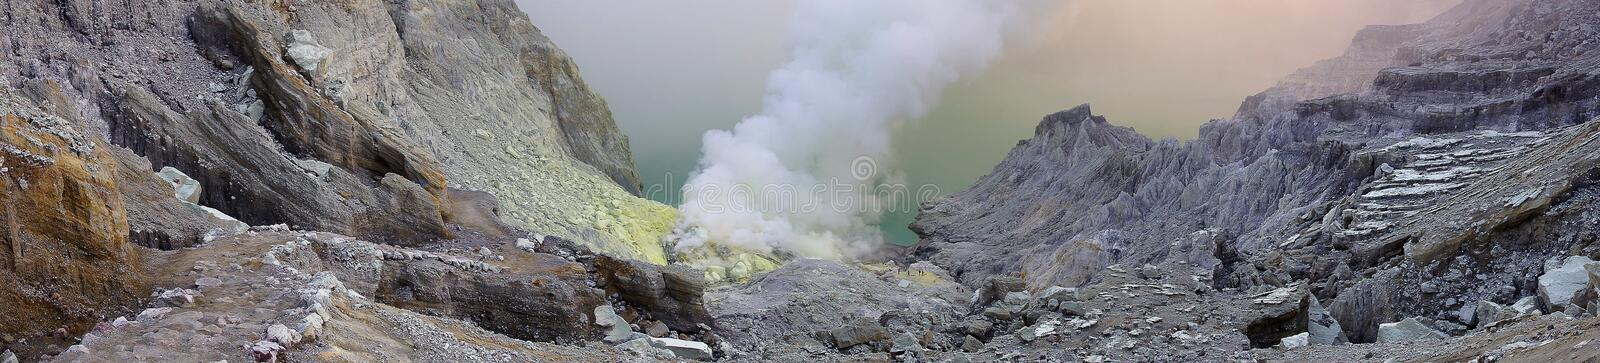 Ijen crater stock photography